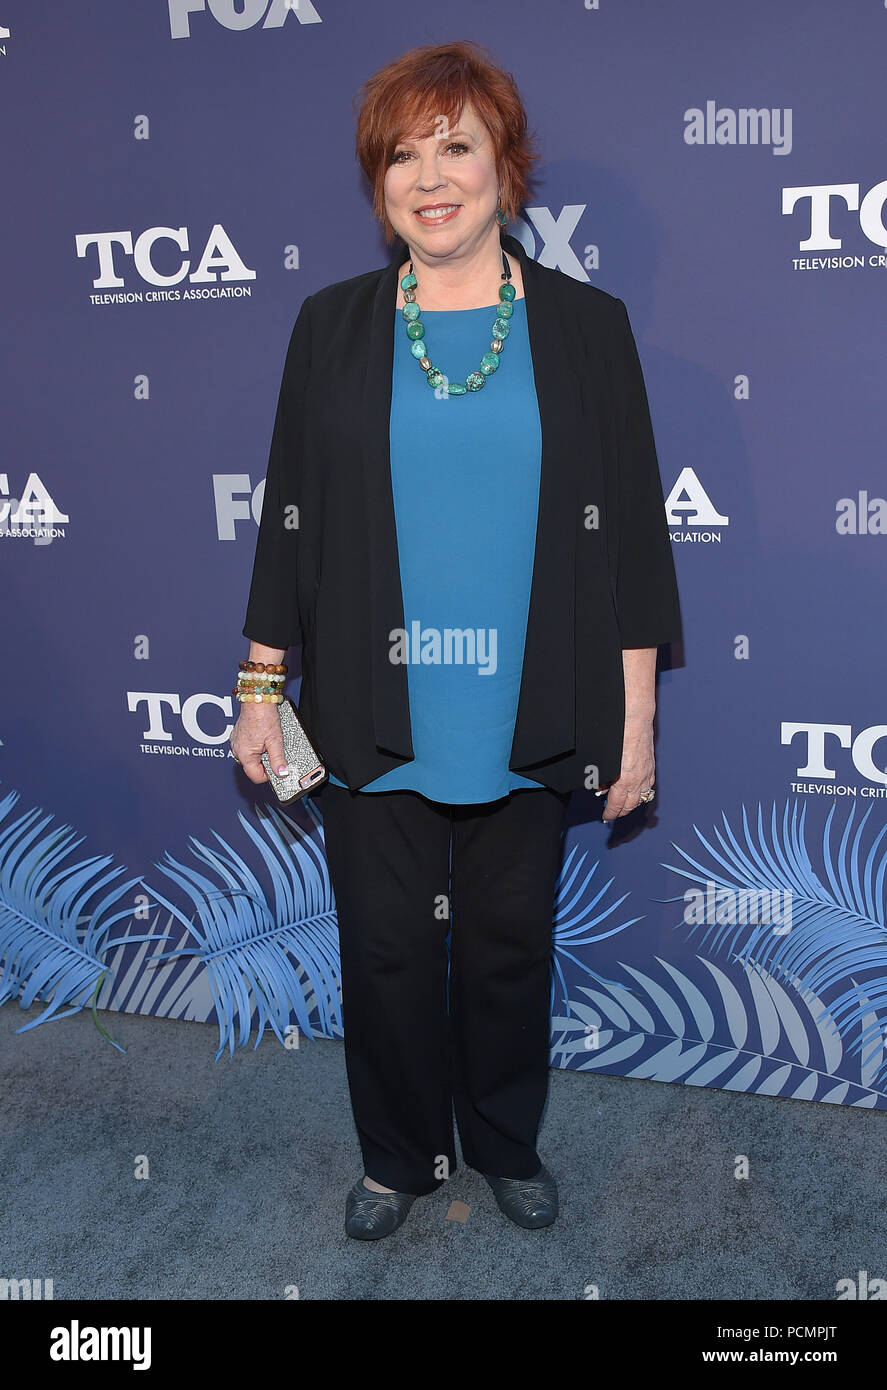 West Hollywood, California, USA. 2nd Aug, 2018. Vicki Lawrence ...